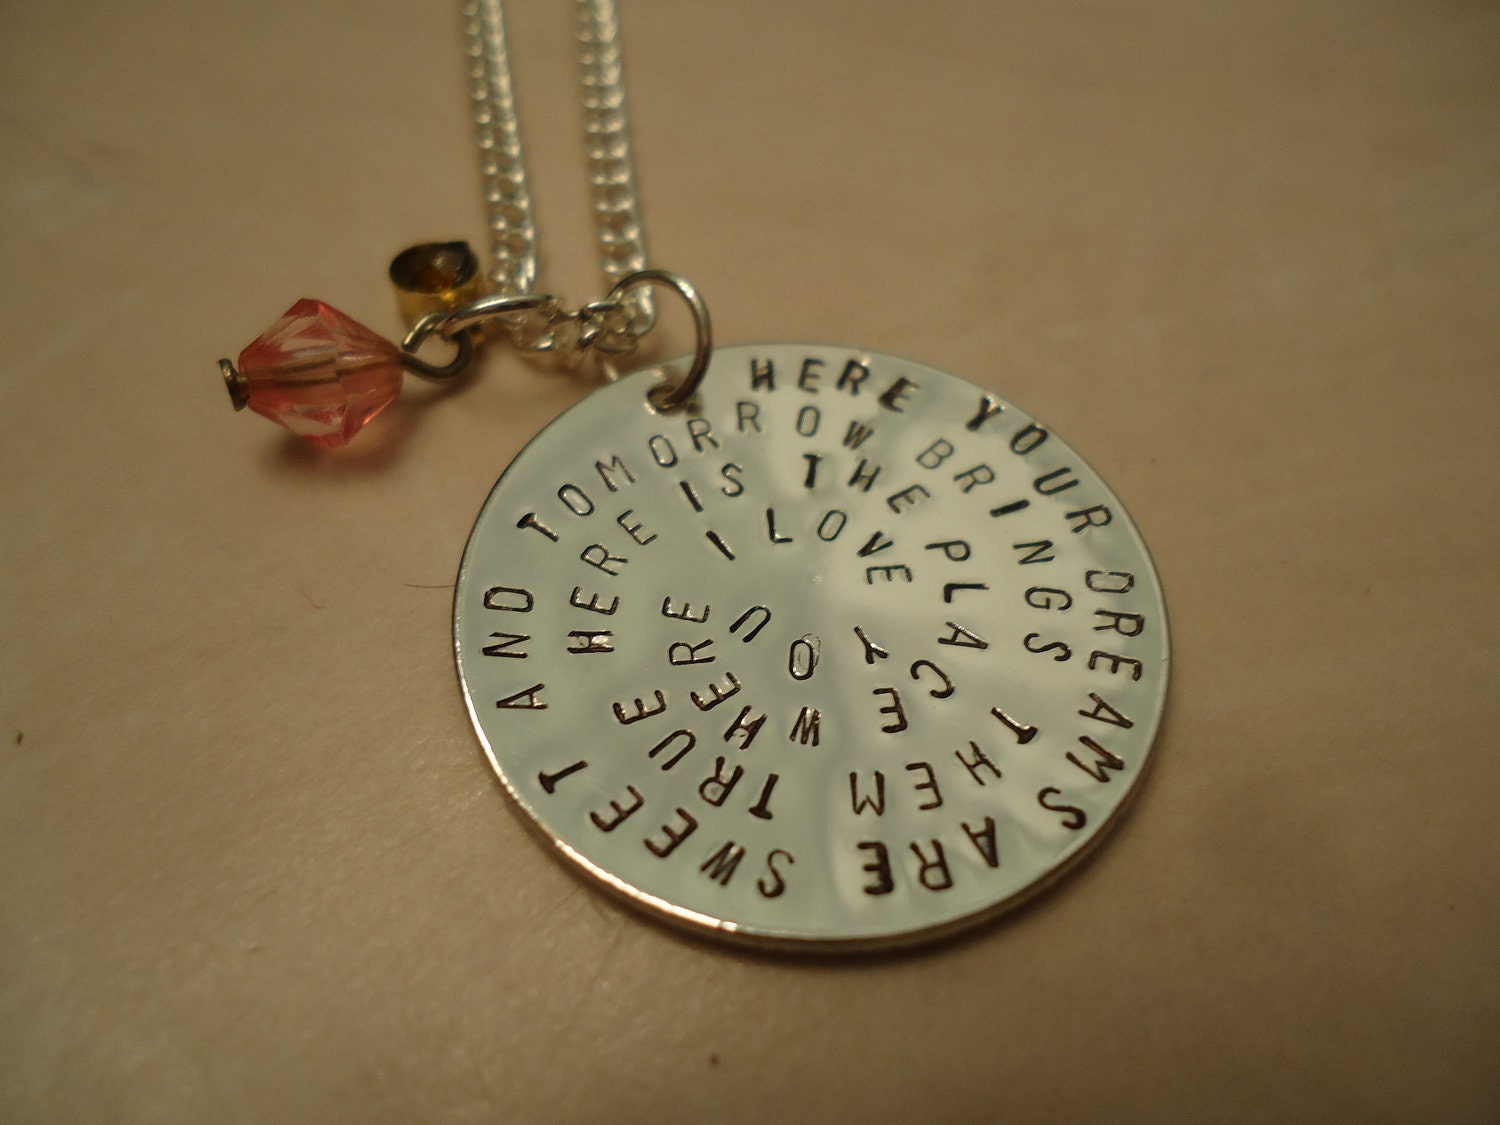 The Hunger Games Inspired Geekery  -  Rue's Lullaby Hand Stamped Silver Necklace With Charms  - FREE SHIPPING